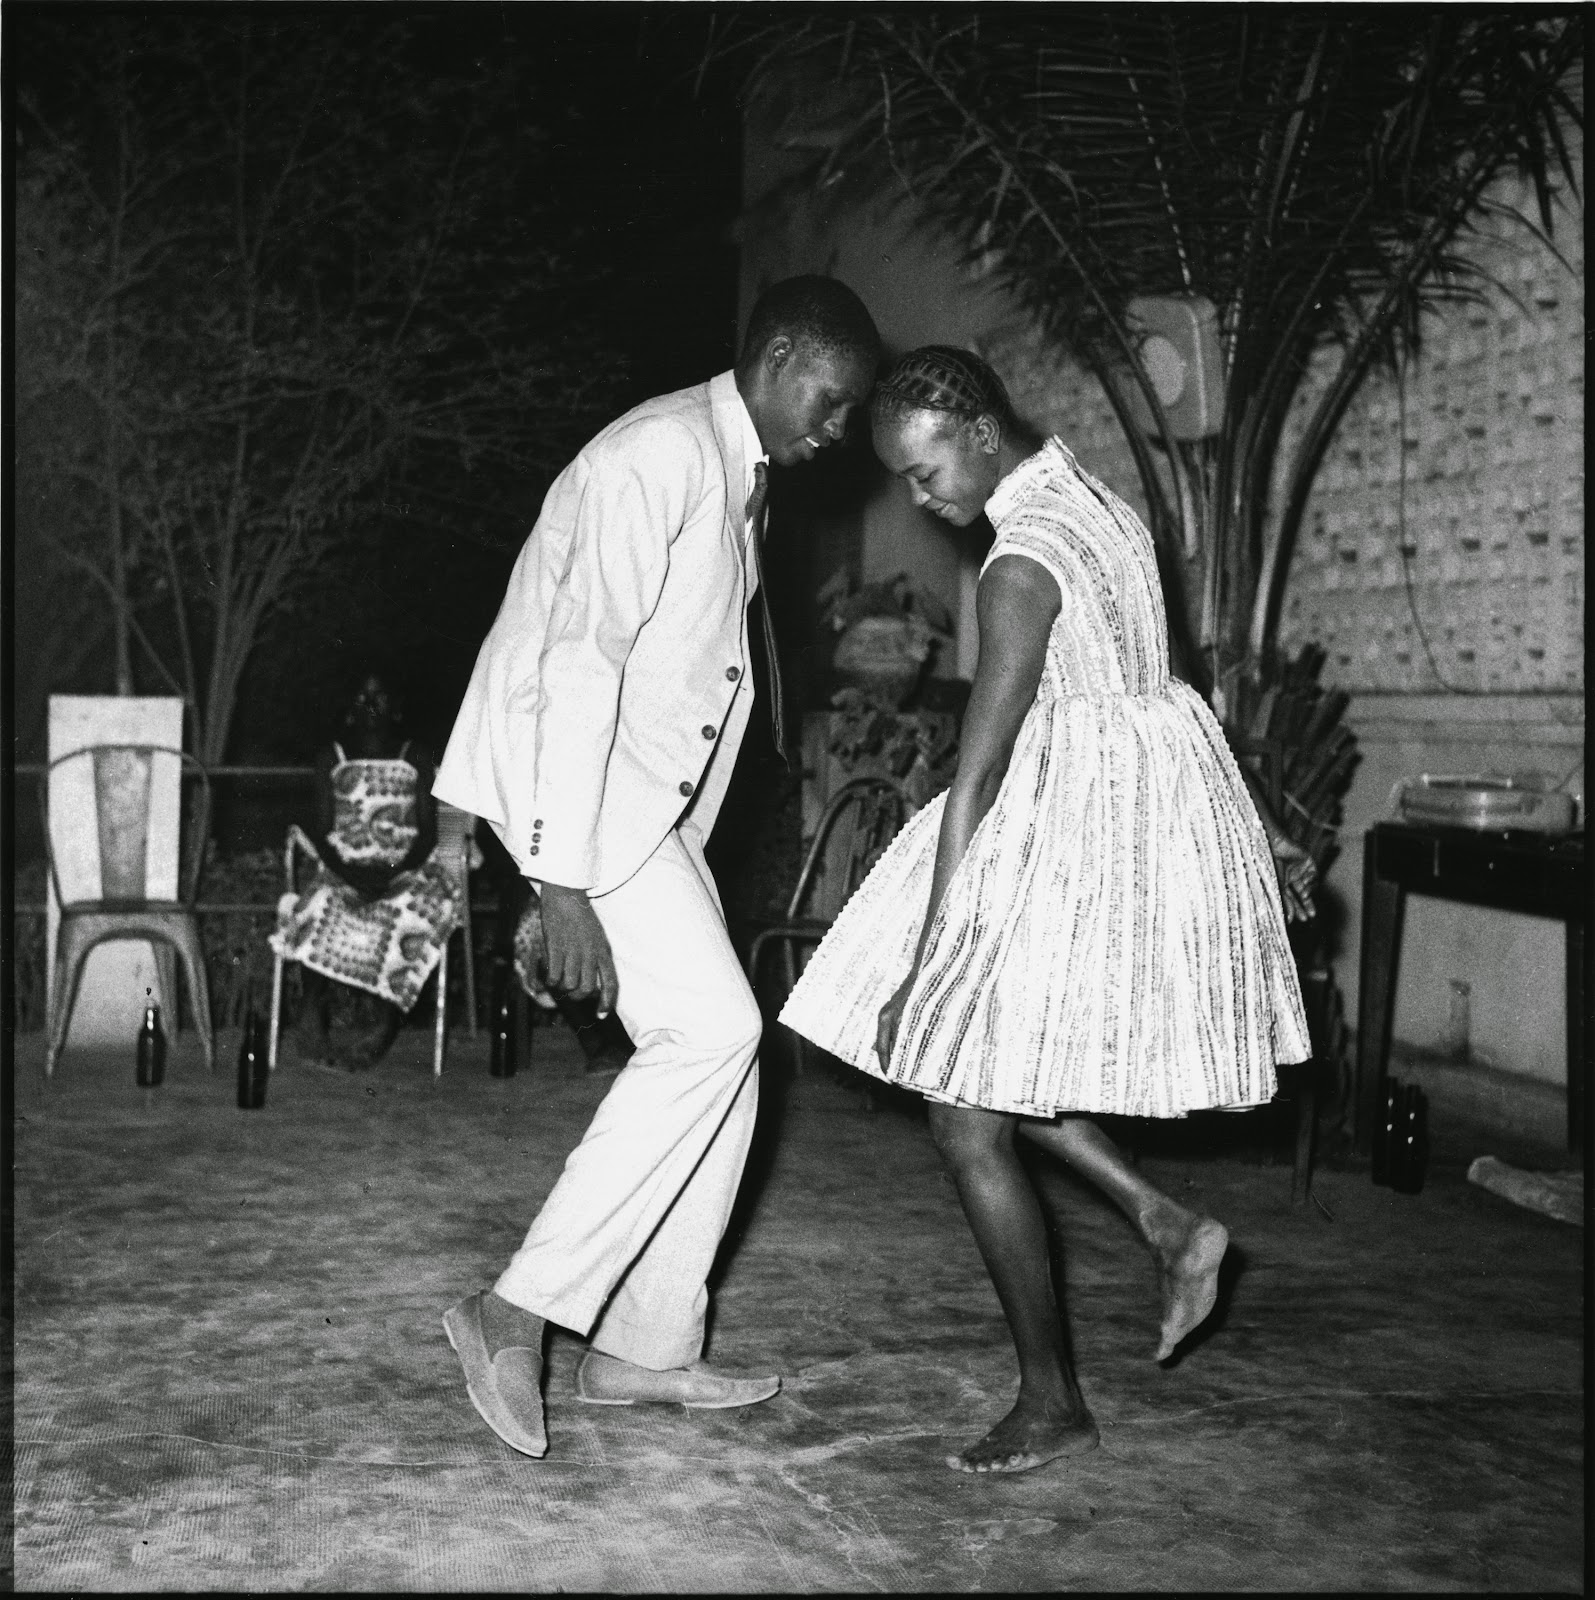 Malick Sidibe: Nuit de Noel Happy-Club, 1963.